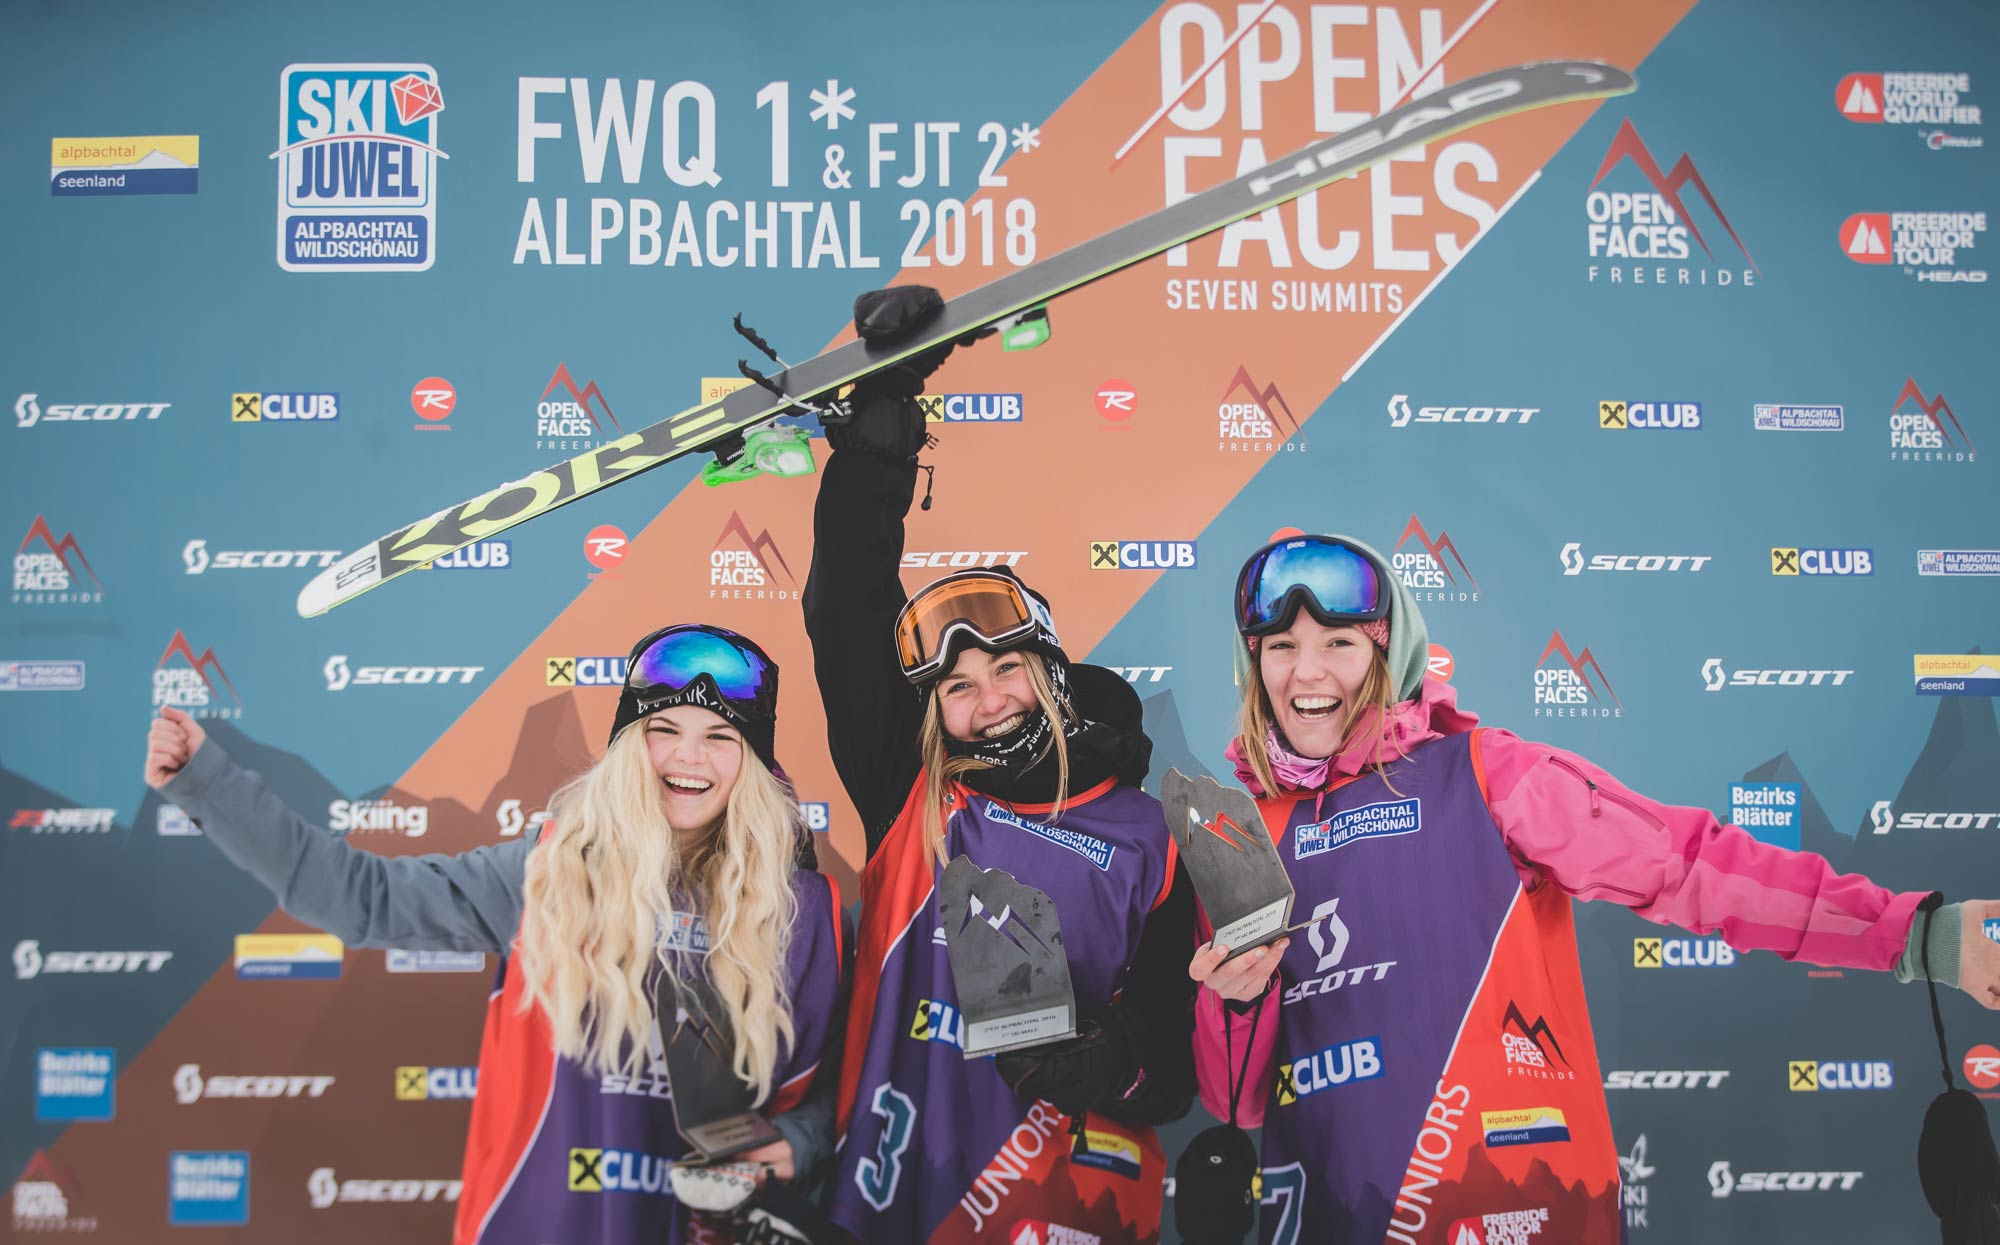 Die Top 3 Frauen beim Open Faces Freeride Contests in Alpbach (FQT): Vicky Candlin (AUT), Jill Frey (GER), Christiane Freimann (AUT) - Foto: Open Faces / Mia Knoll